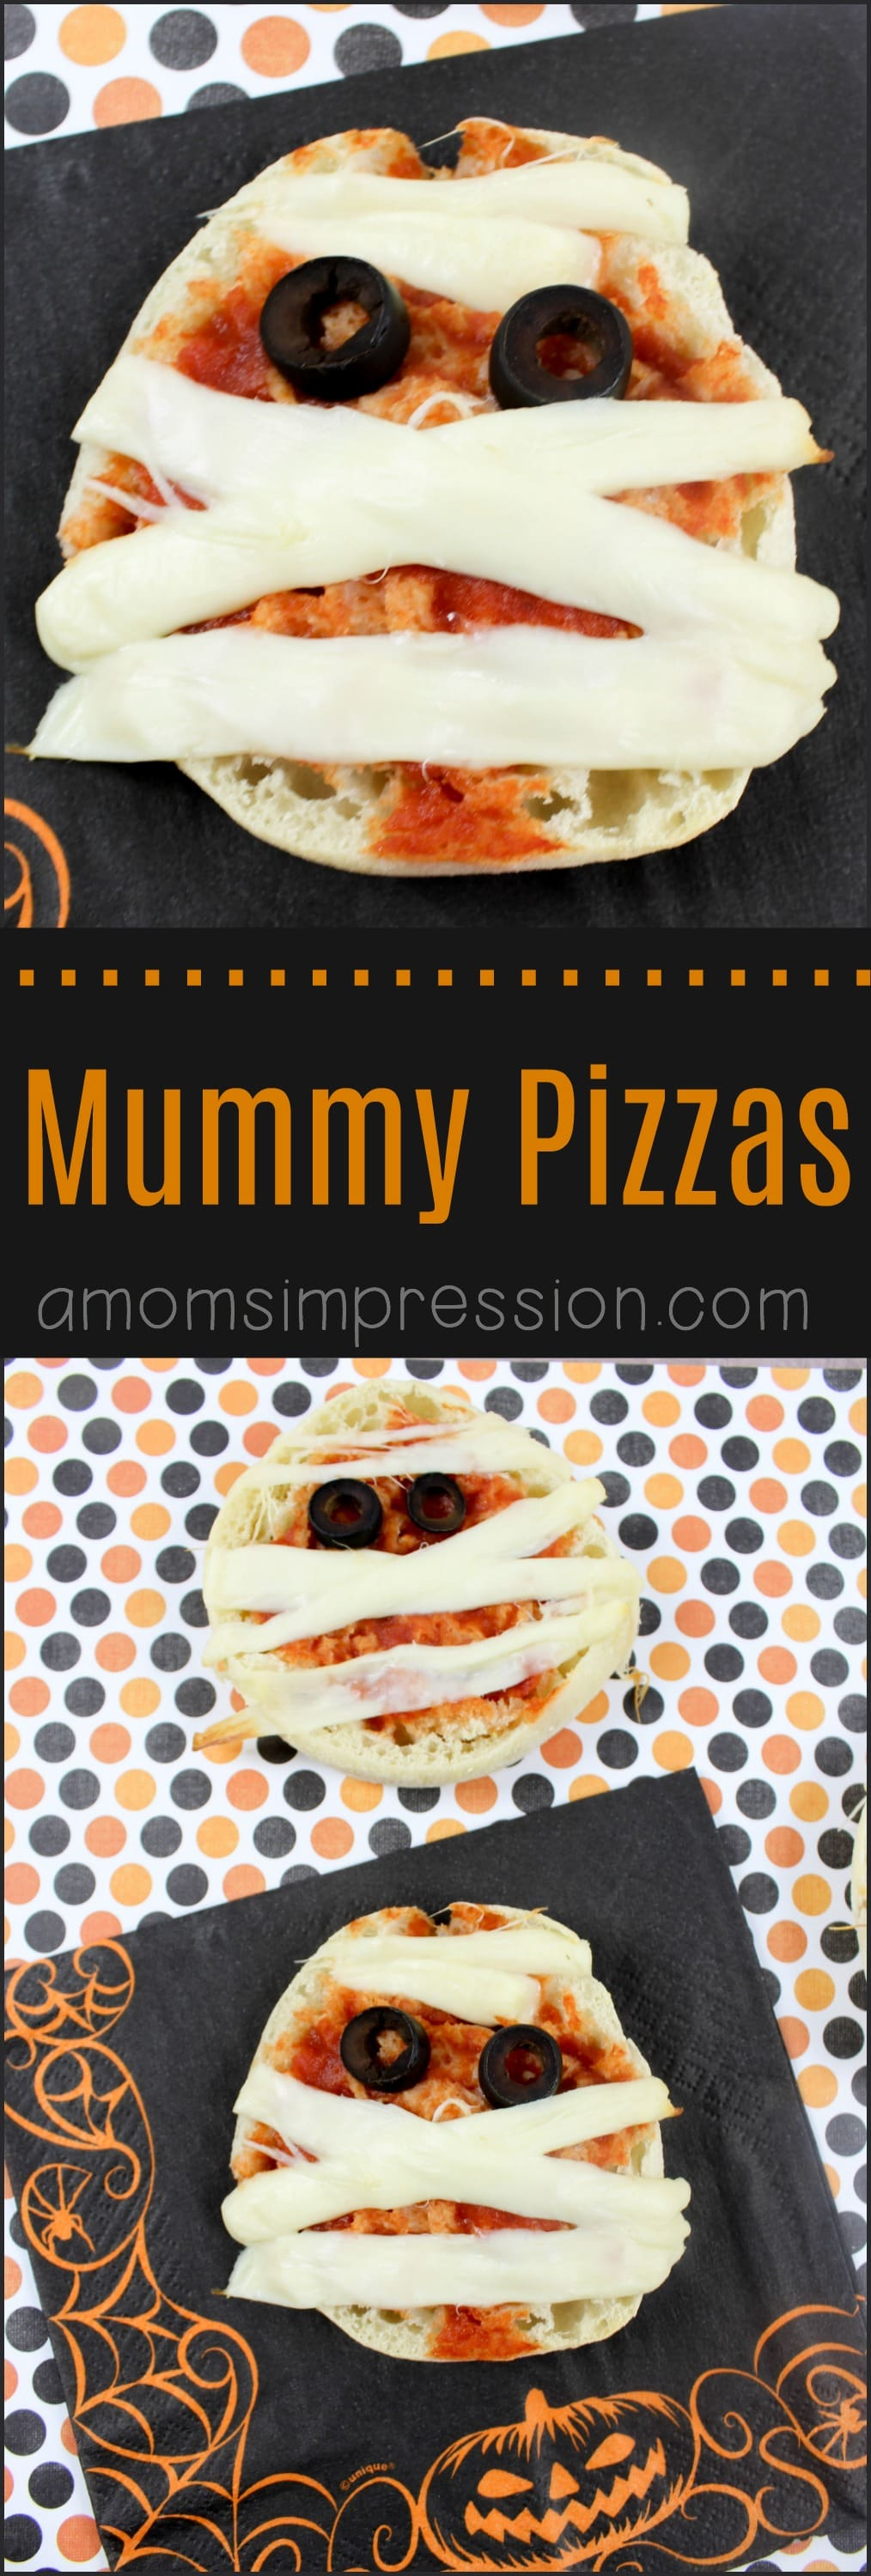 These adorable Mummy pizzas are perfect for kids this Halloween. Using English muffins and string cheese, these fun bites are ready in minutes.